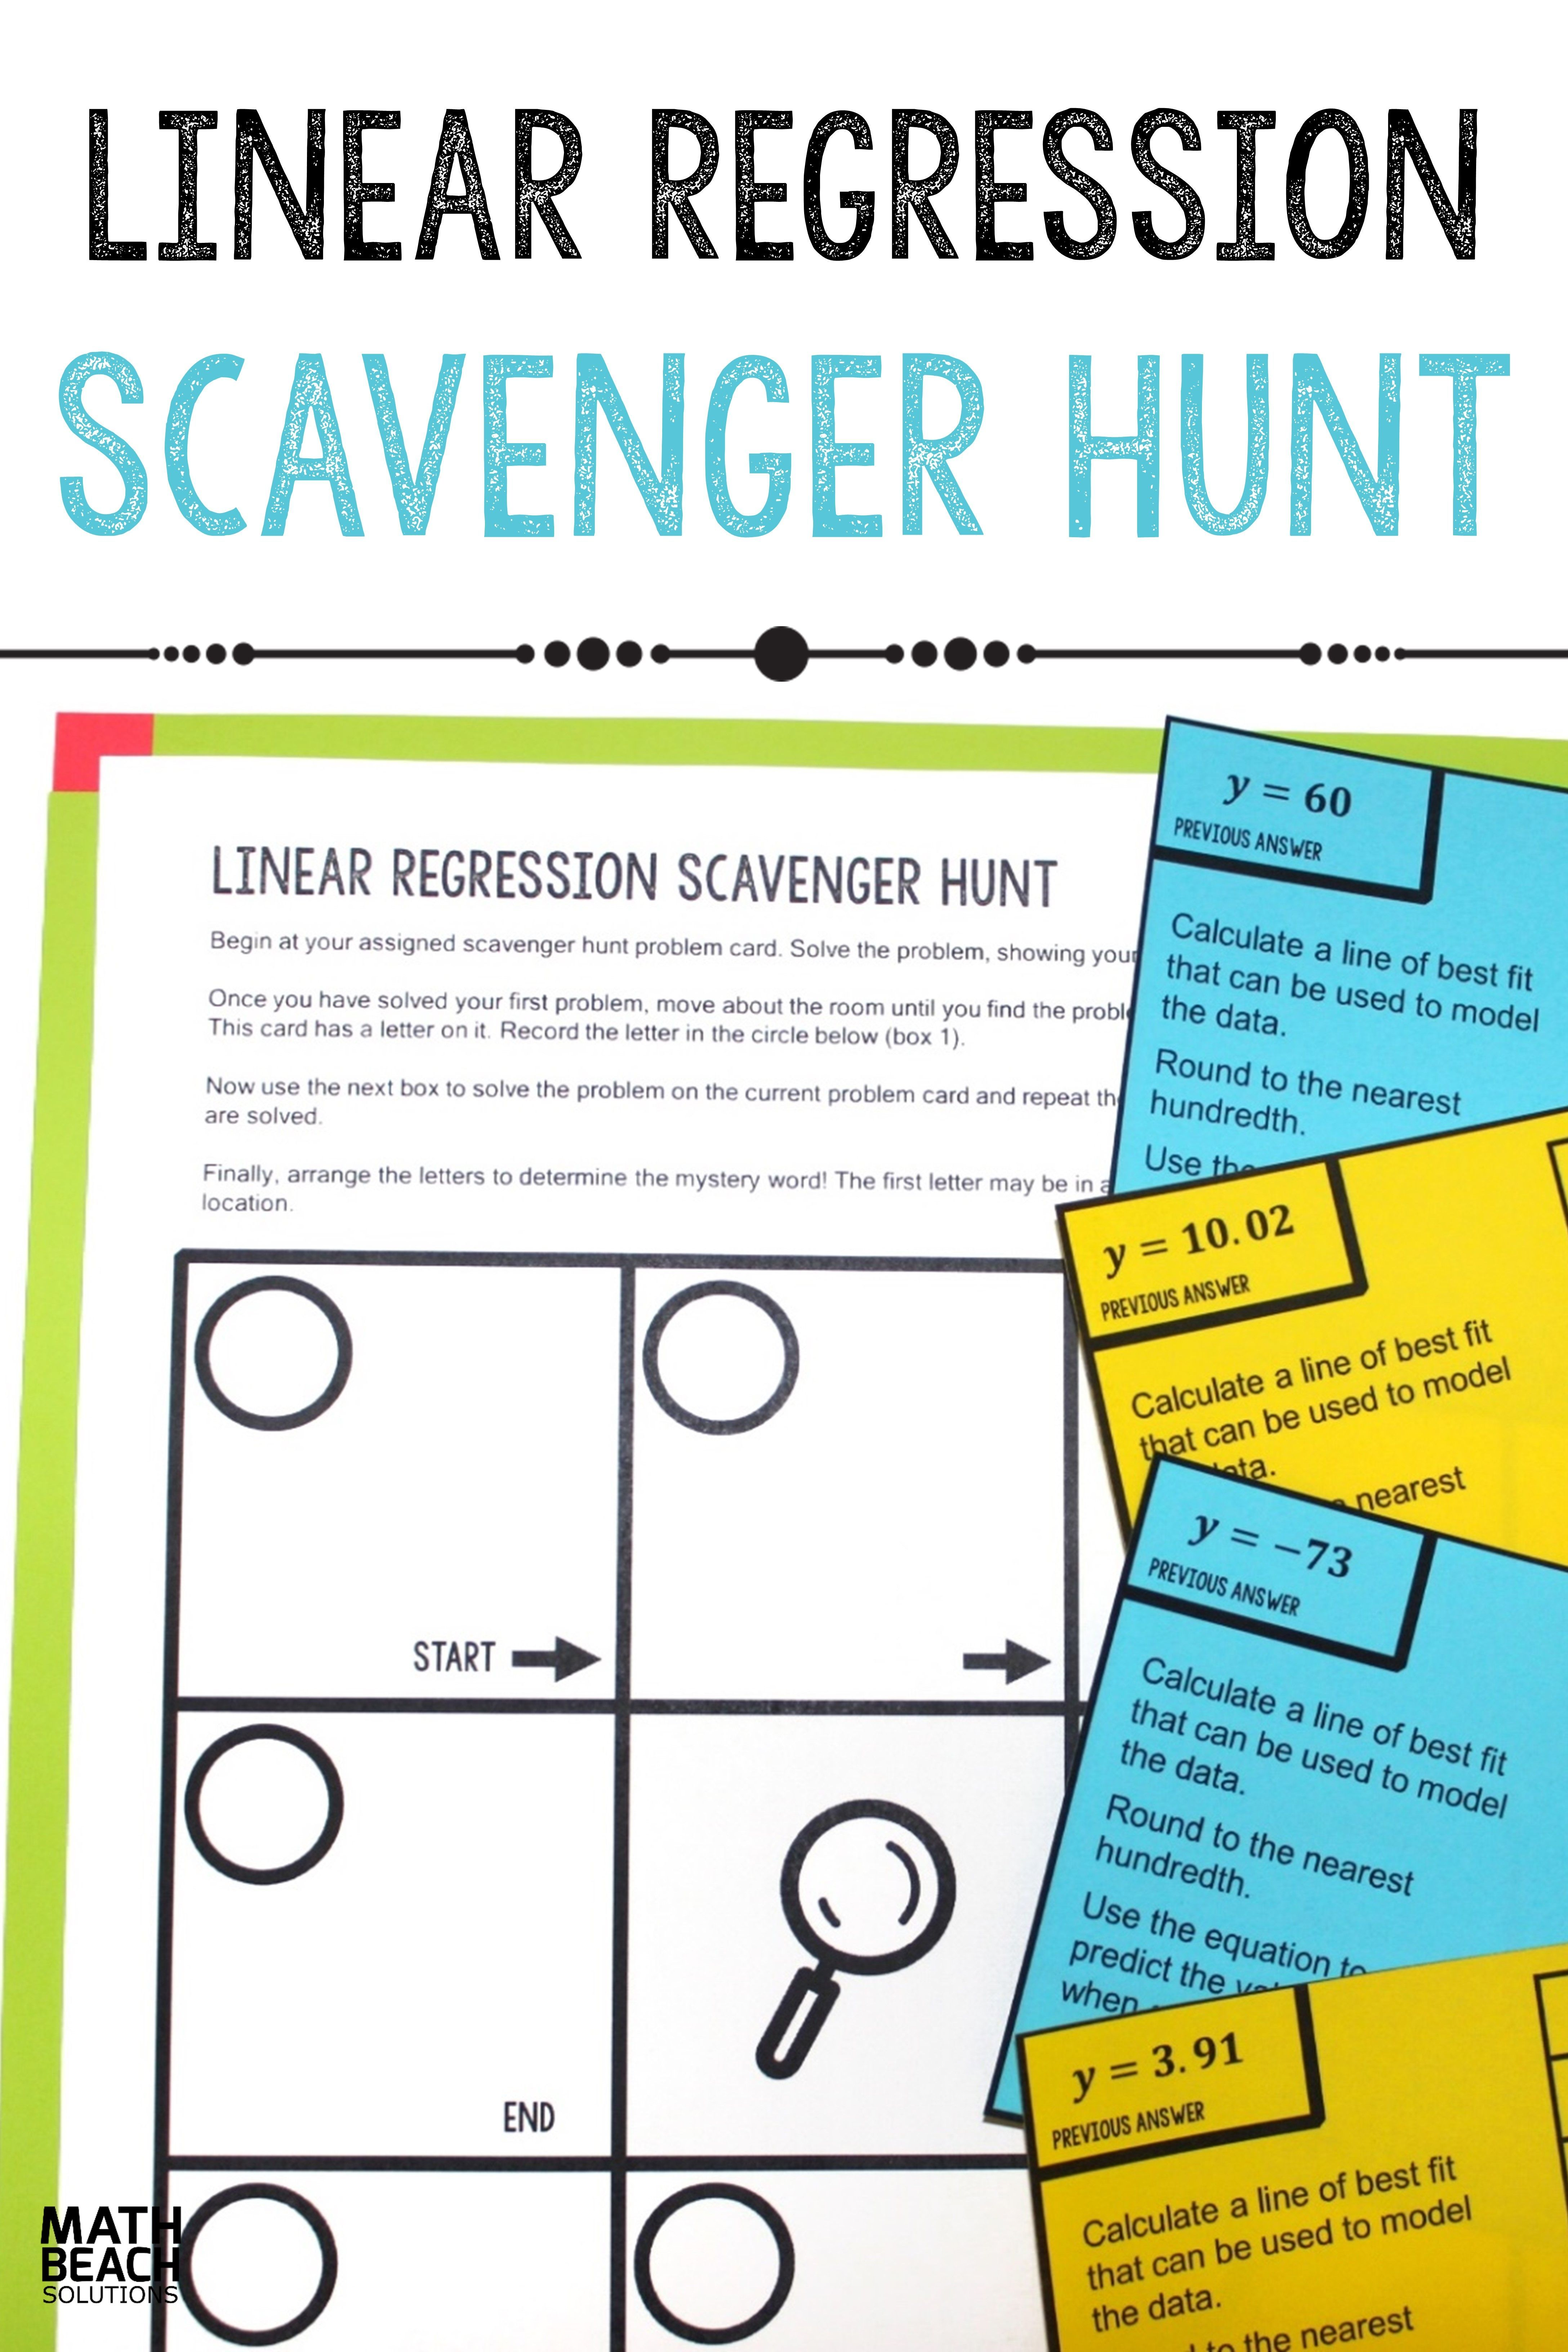 Linear Regression Scavenger Hunt Activity